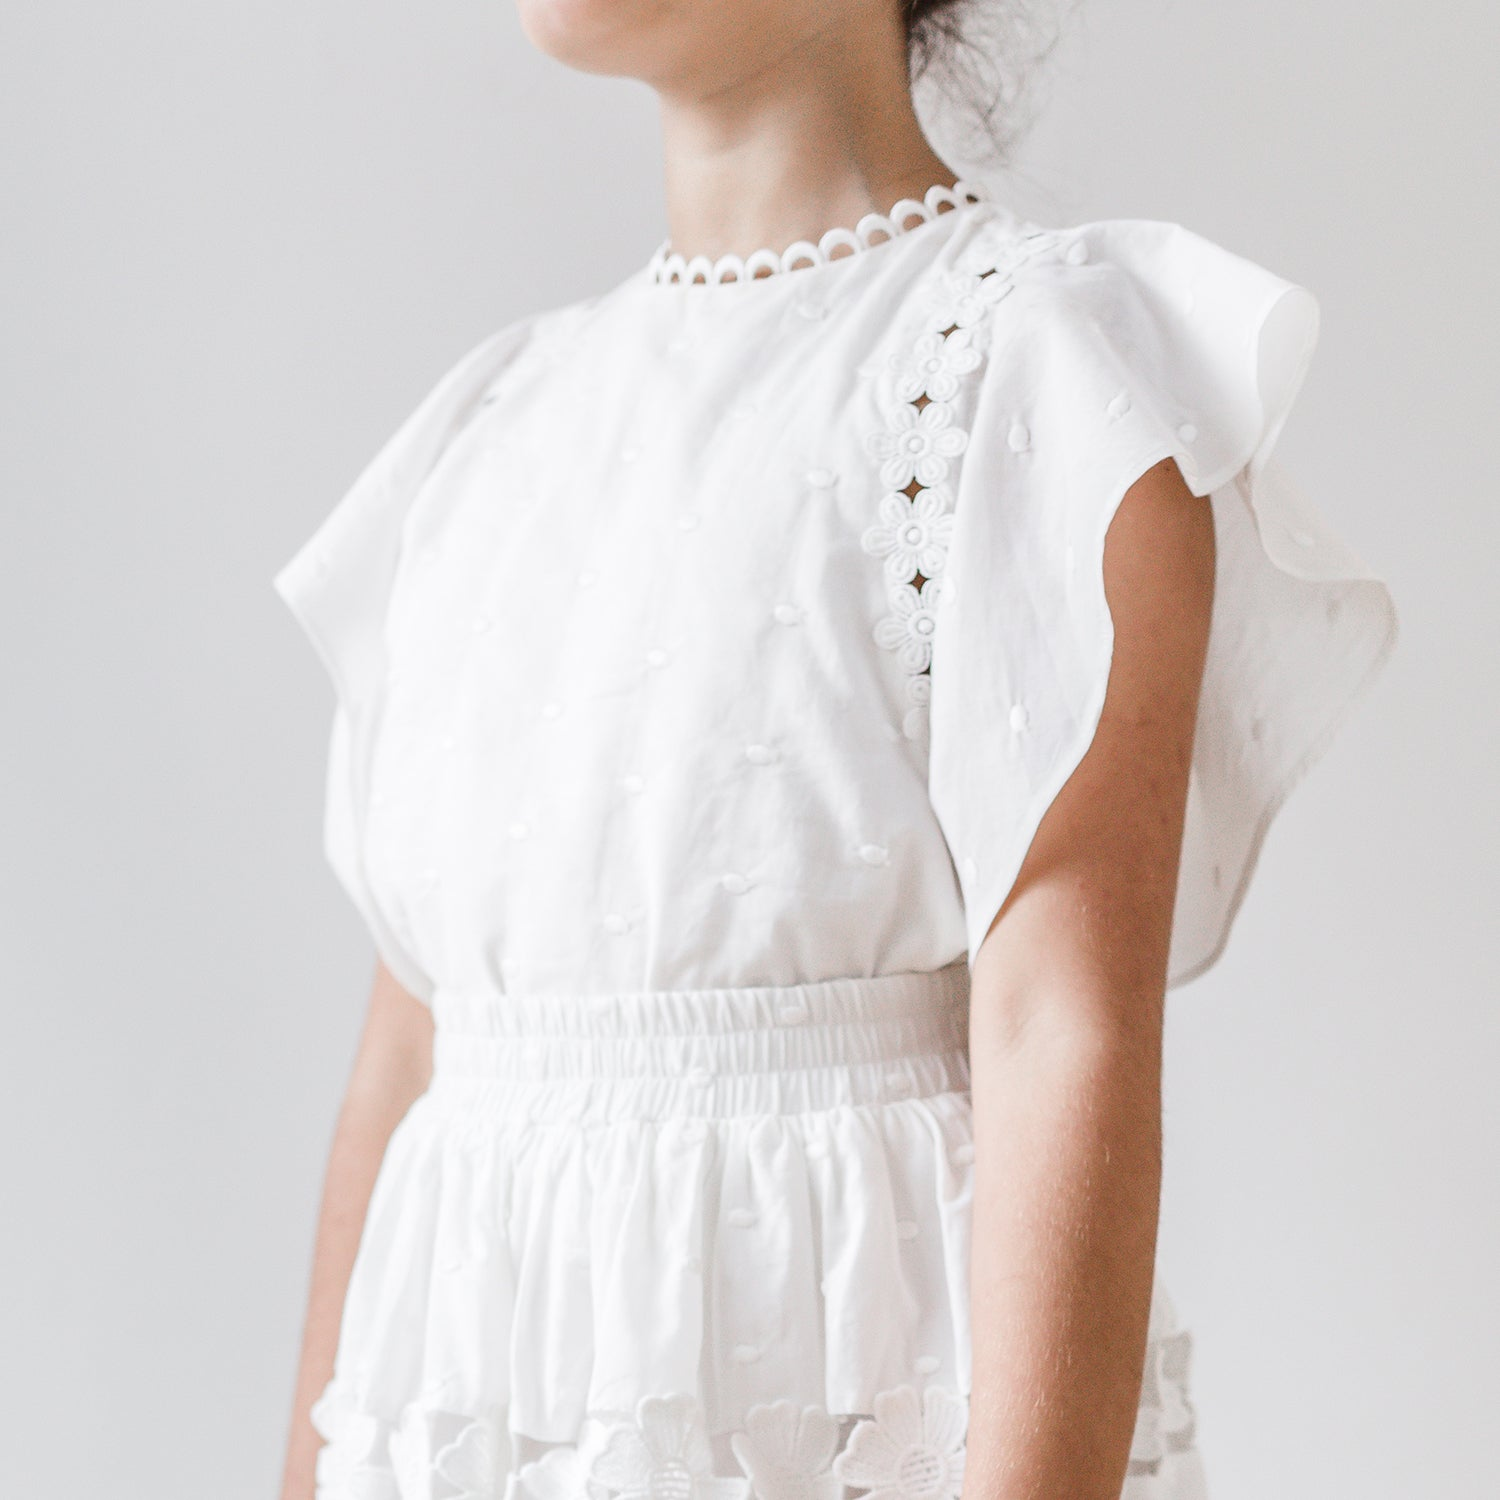 yoya, kids, girls, petite amalie, summer, lightweight, ruffle shoulder, sleeveless, embroidered, dressy casual, blouse, shirt, top